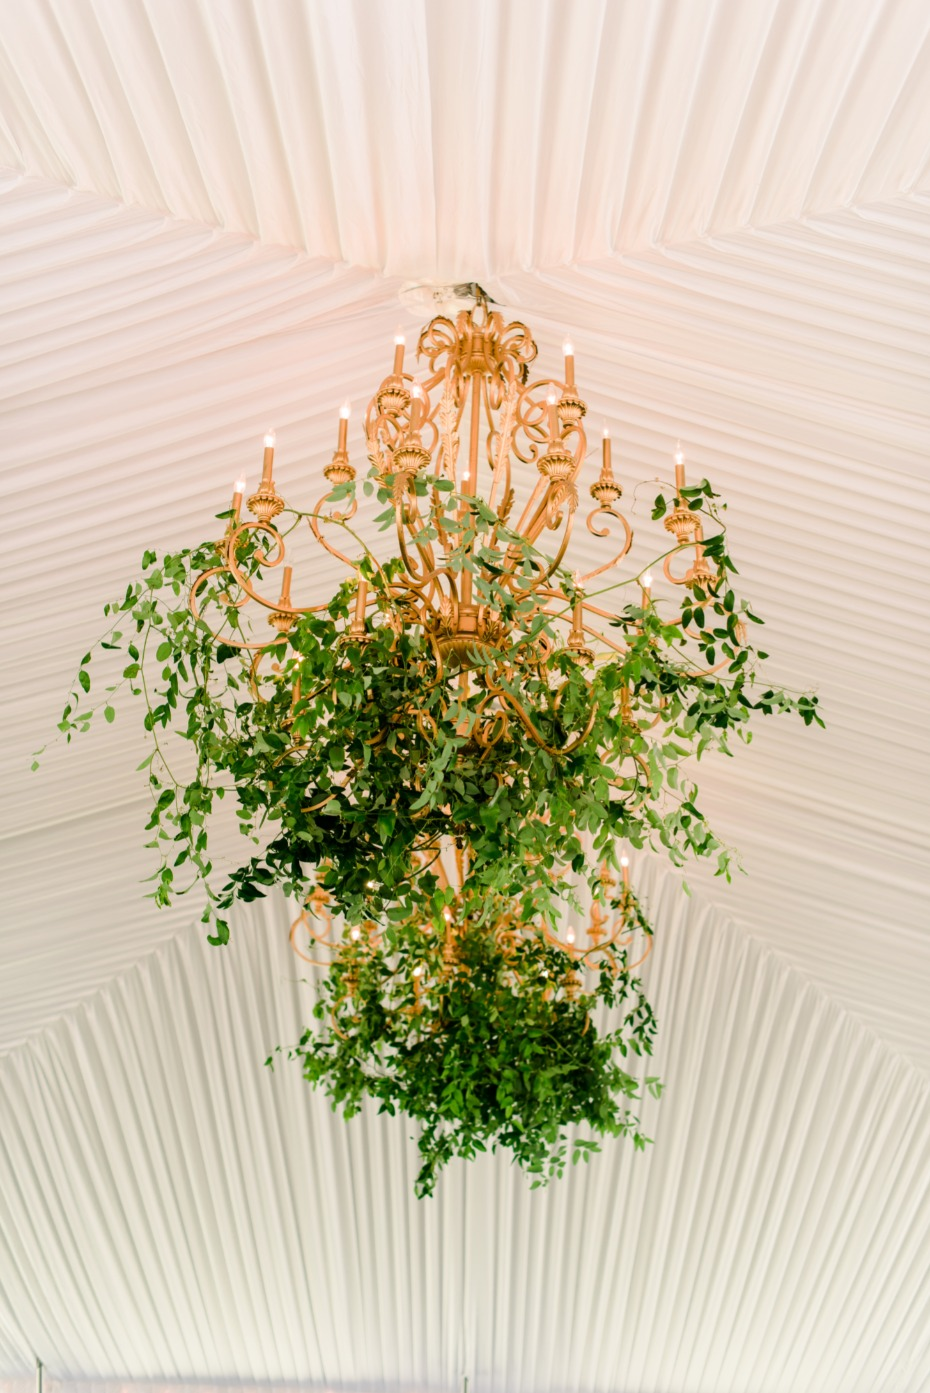 ivy accented wedding chandeliers in the center of the reception tent